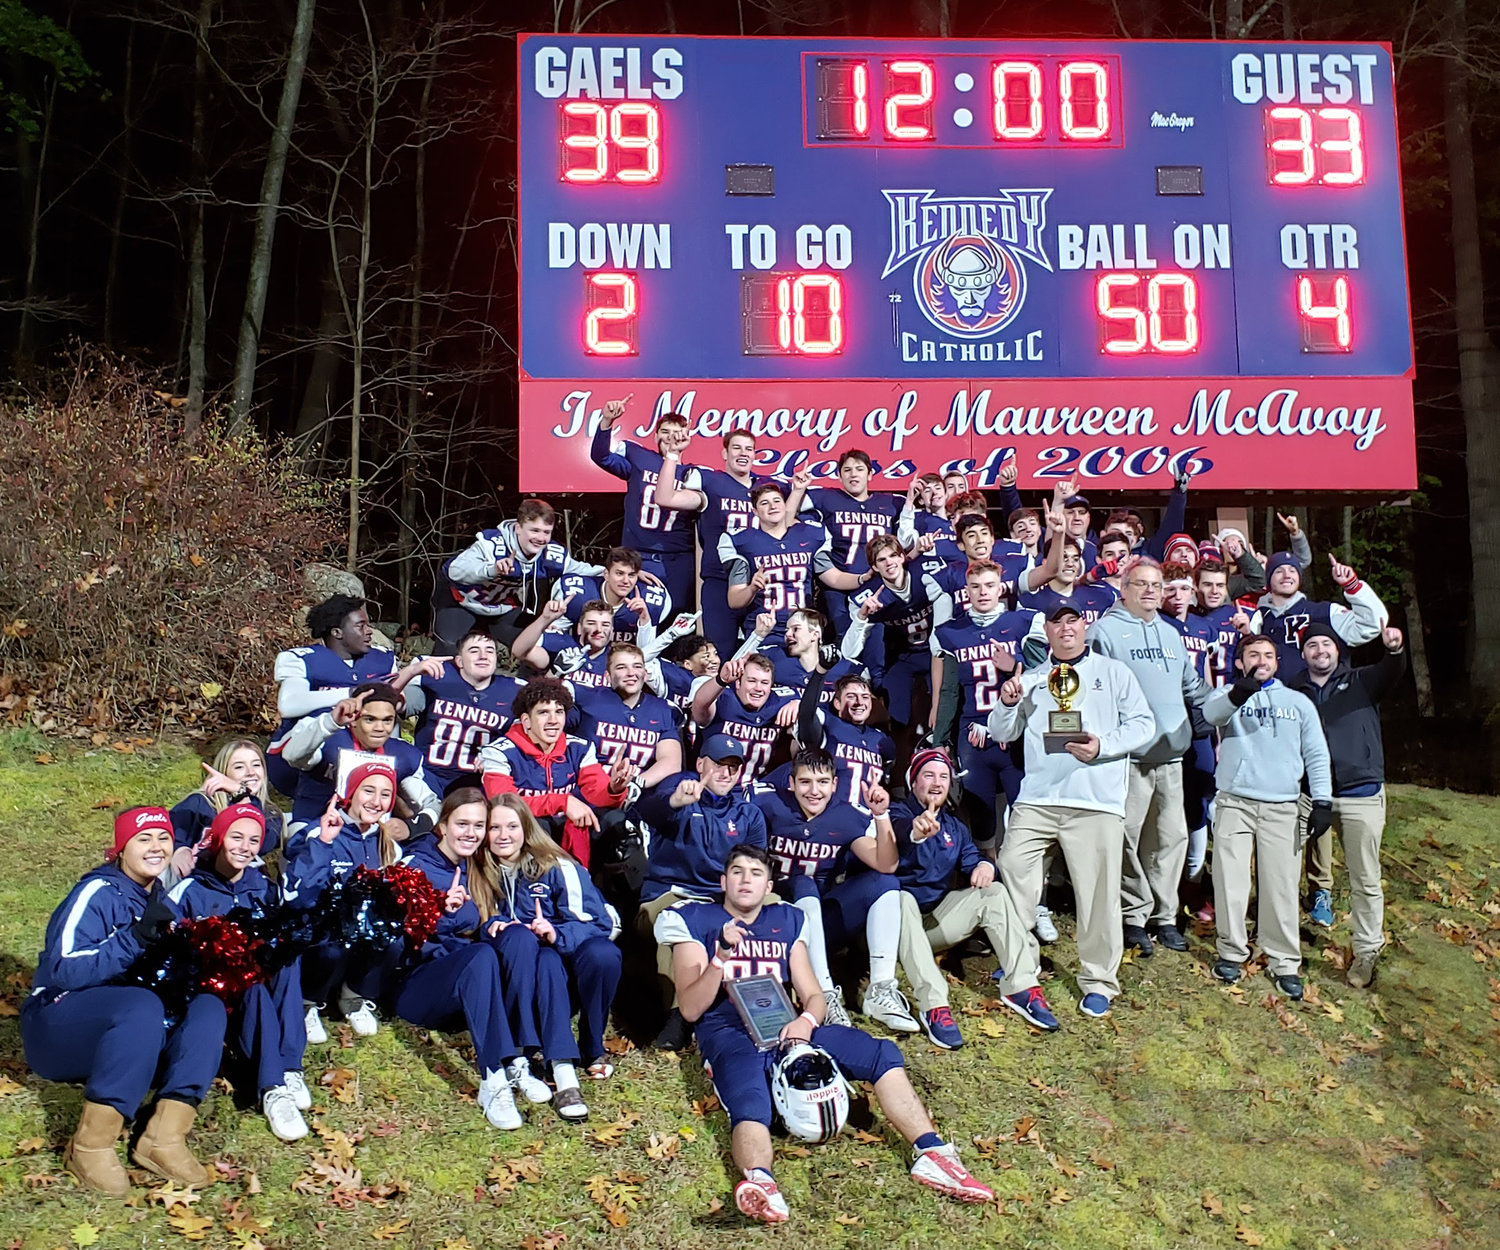 A team photo of John F. Kennedy Catholic is taken after the Gaels won the Catholic High School Football League A championship in overtime against Cardinal Spellman in Somers Nov. 10.